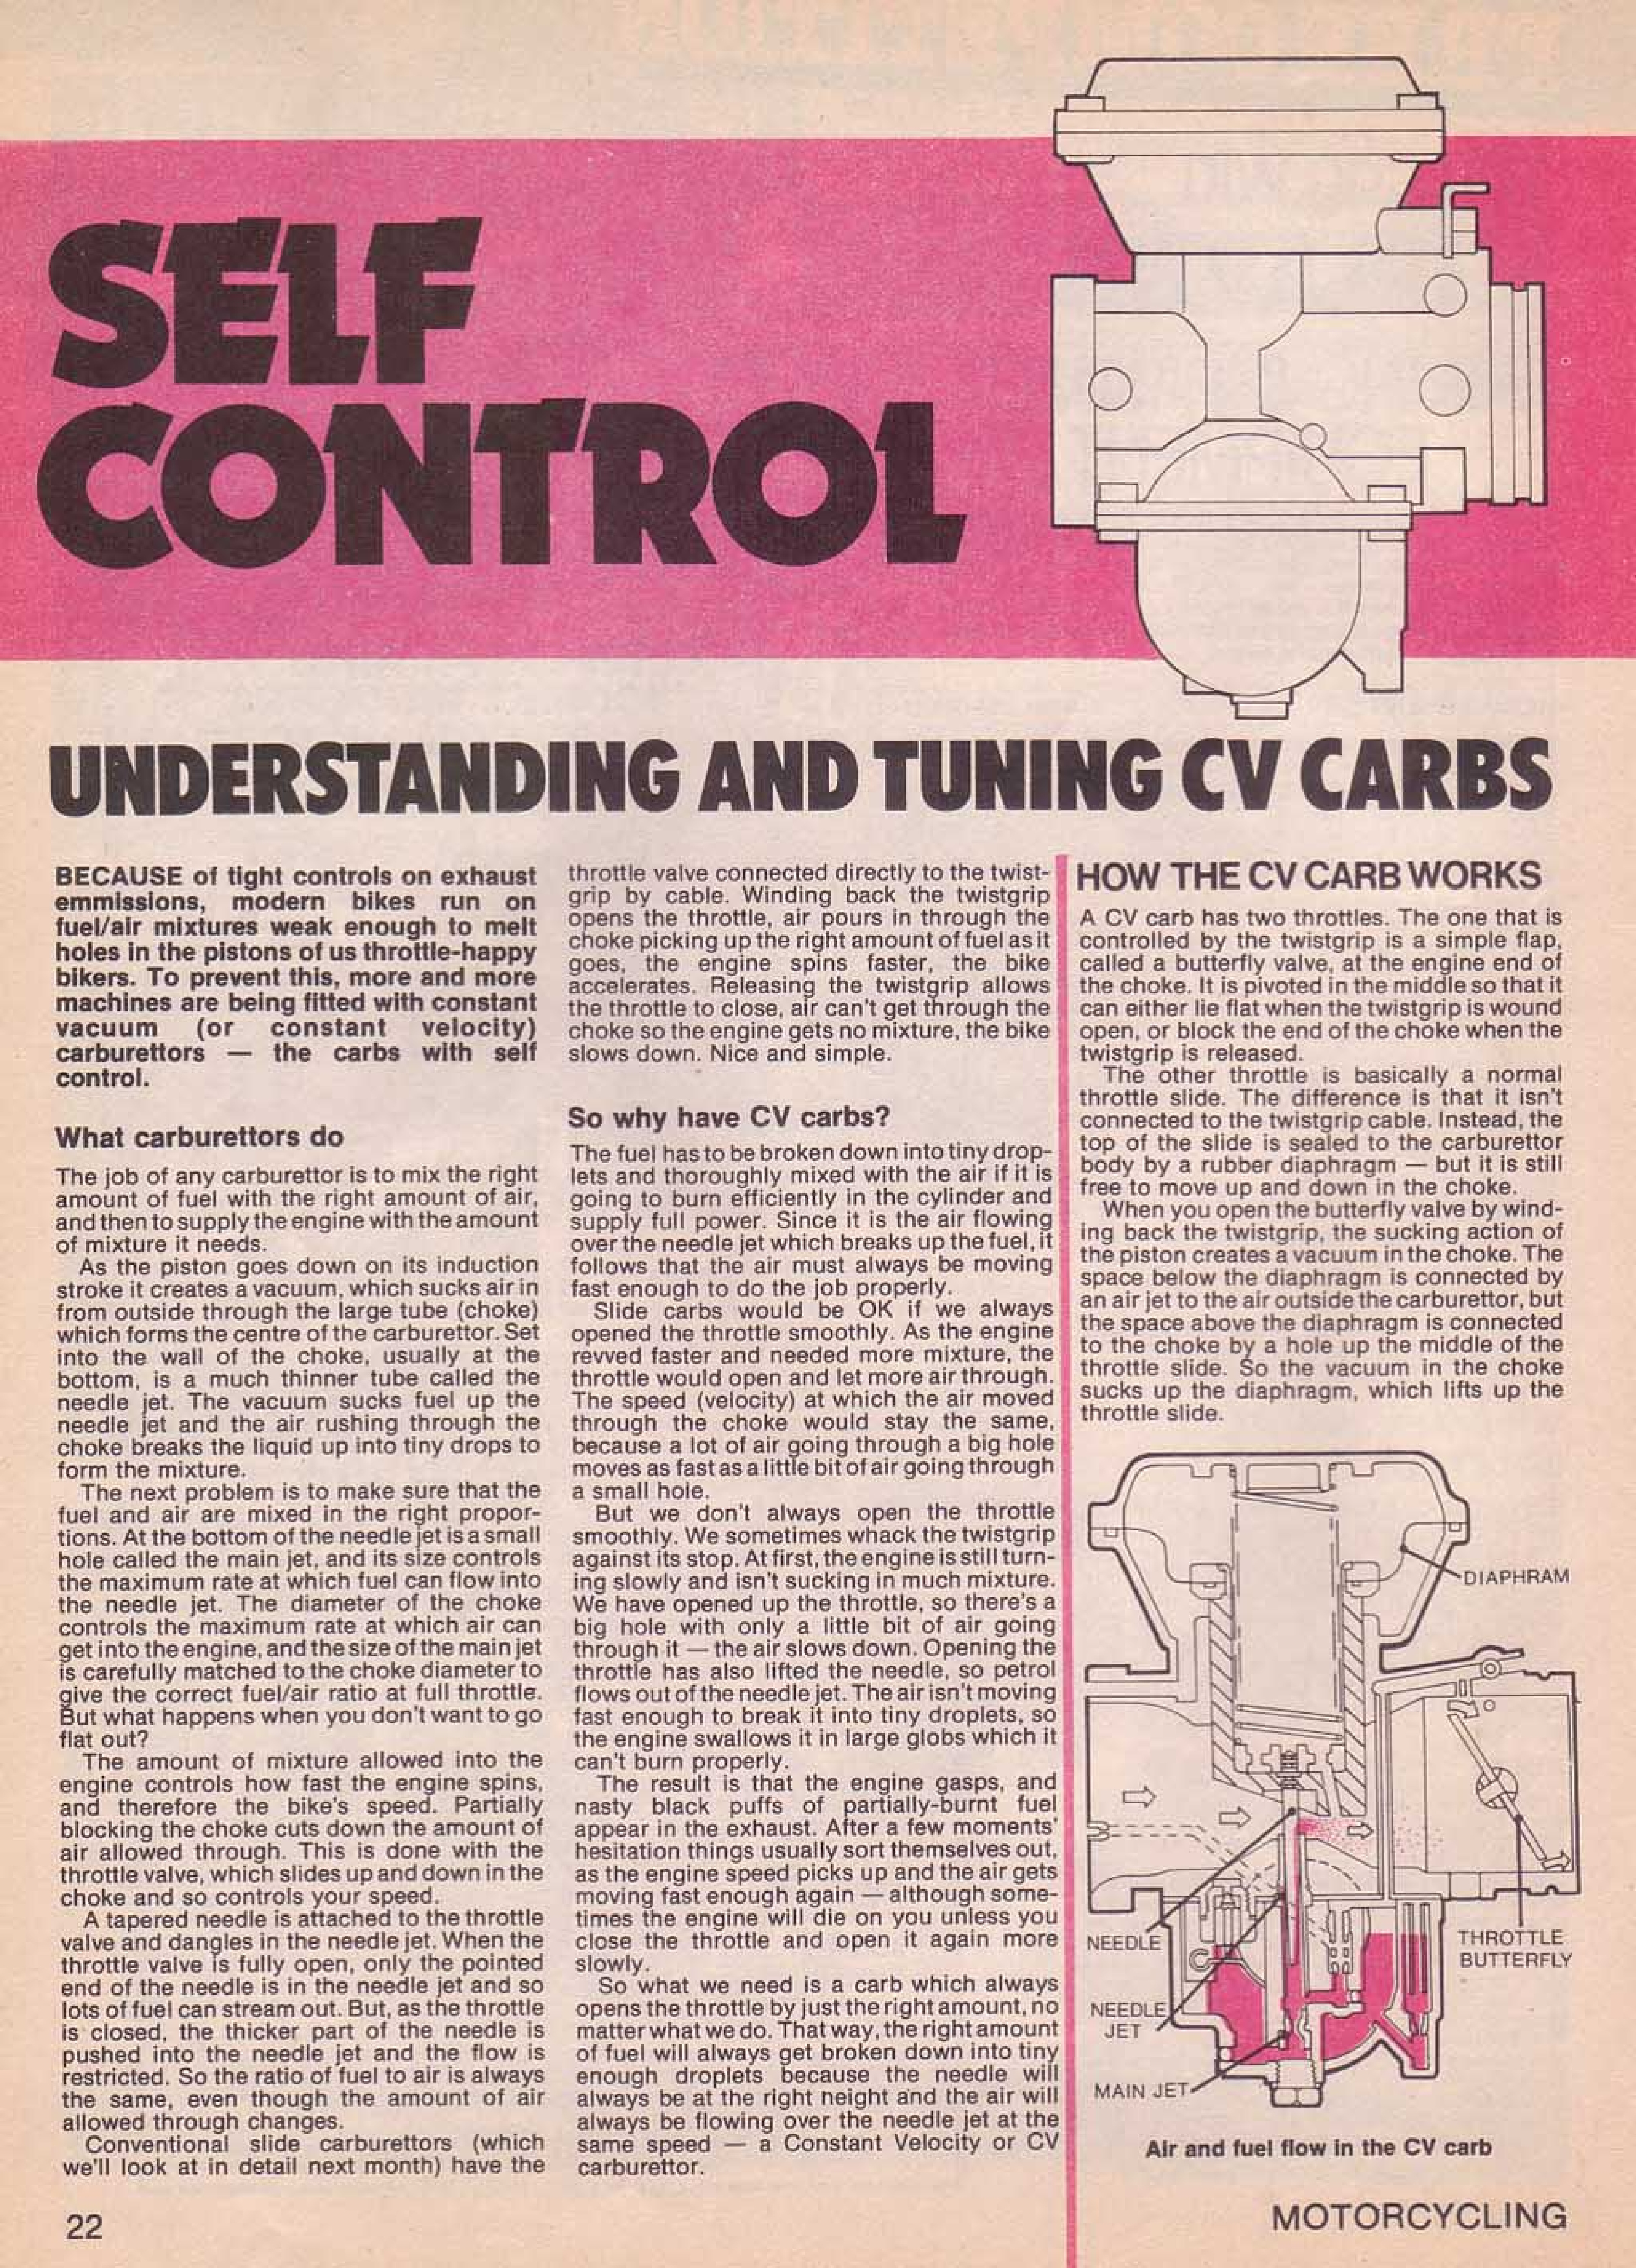 Motorcycling Magazine about CV Carburetors (July 1979)